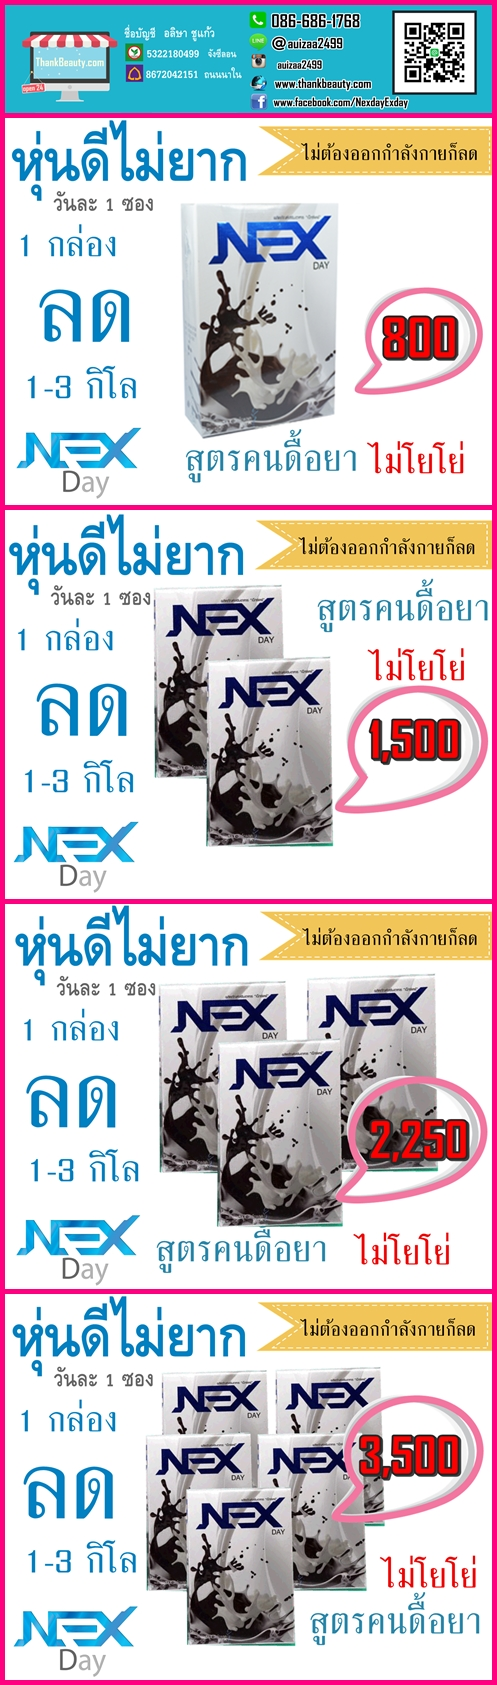 https://www.facebook.com/NexdayExday